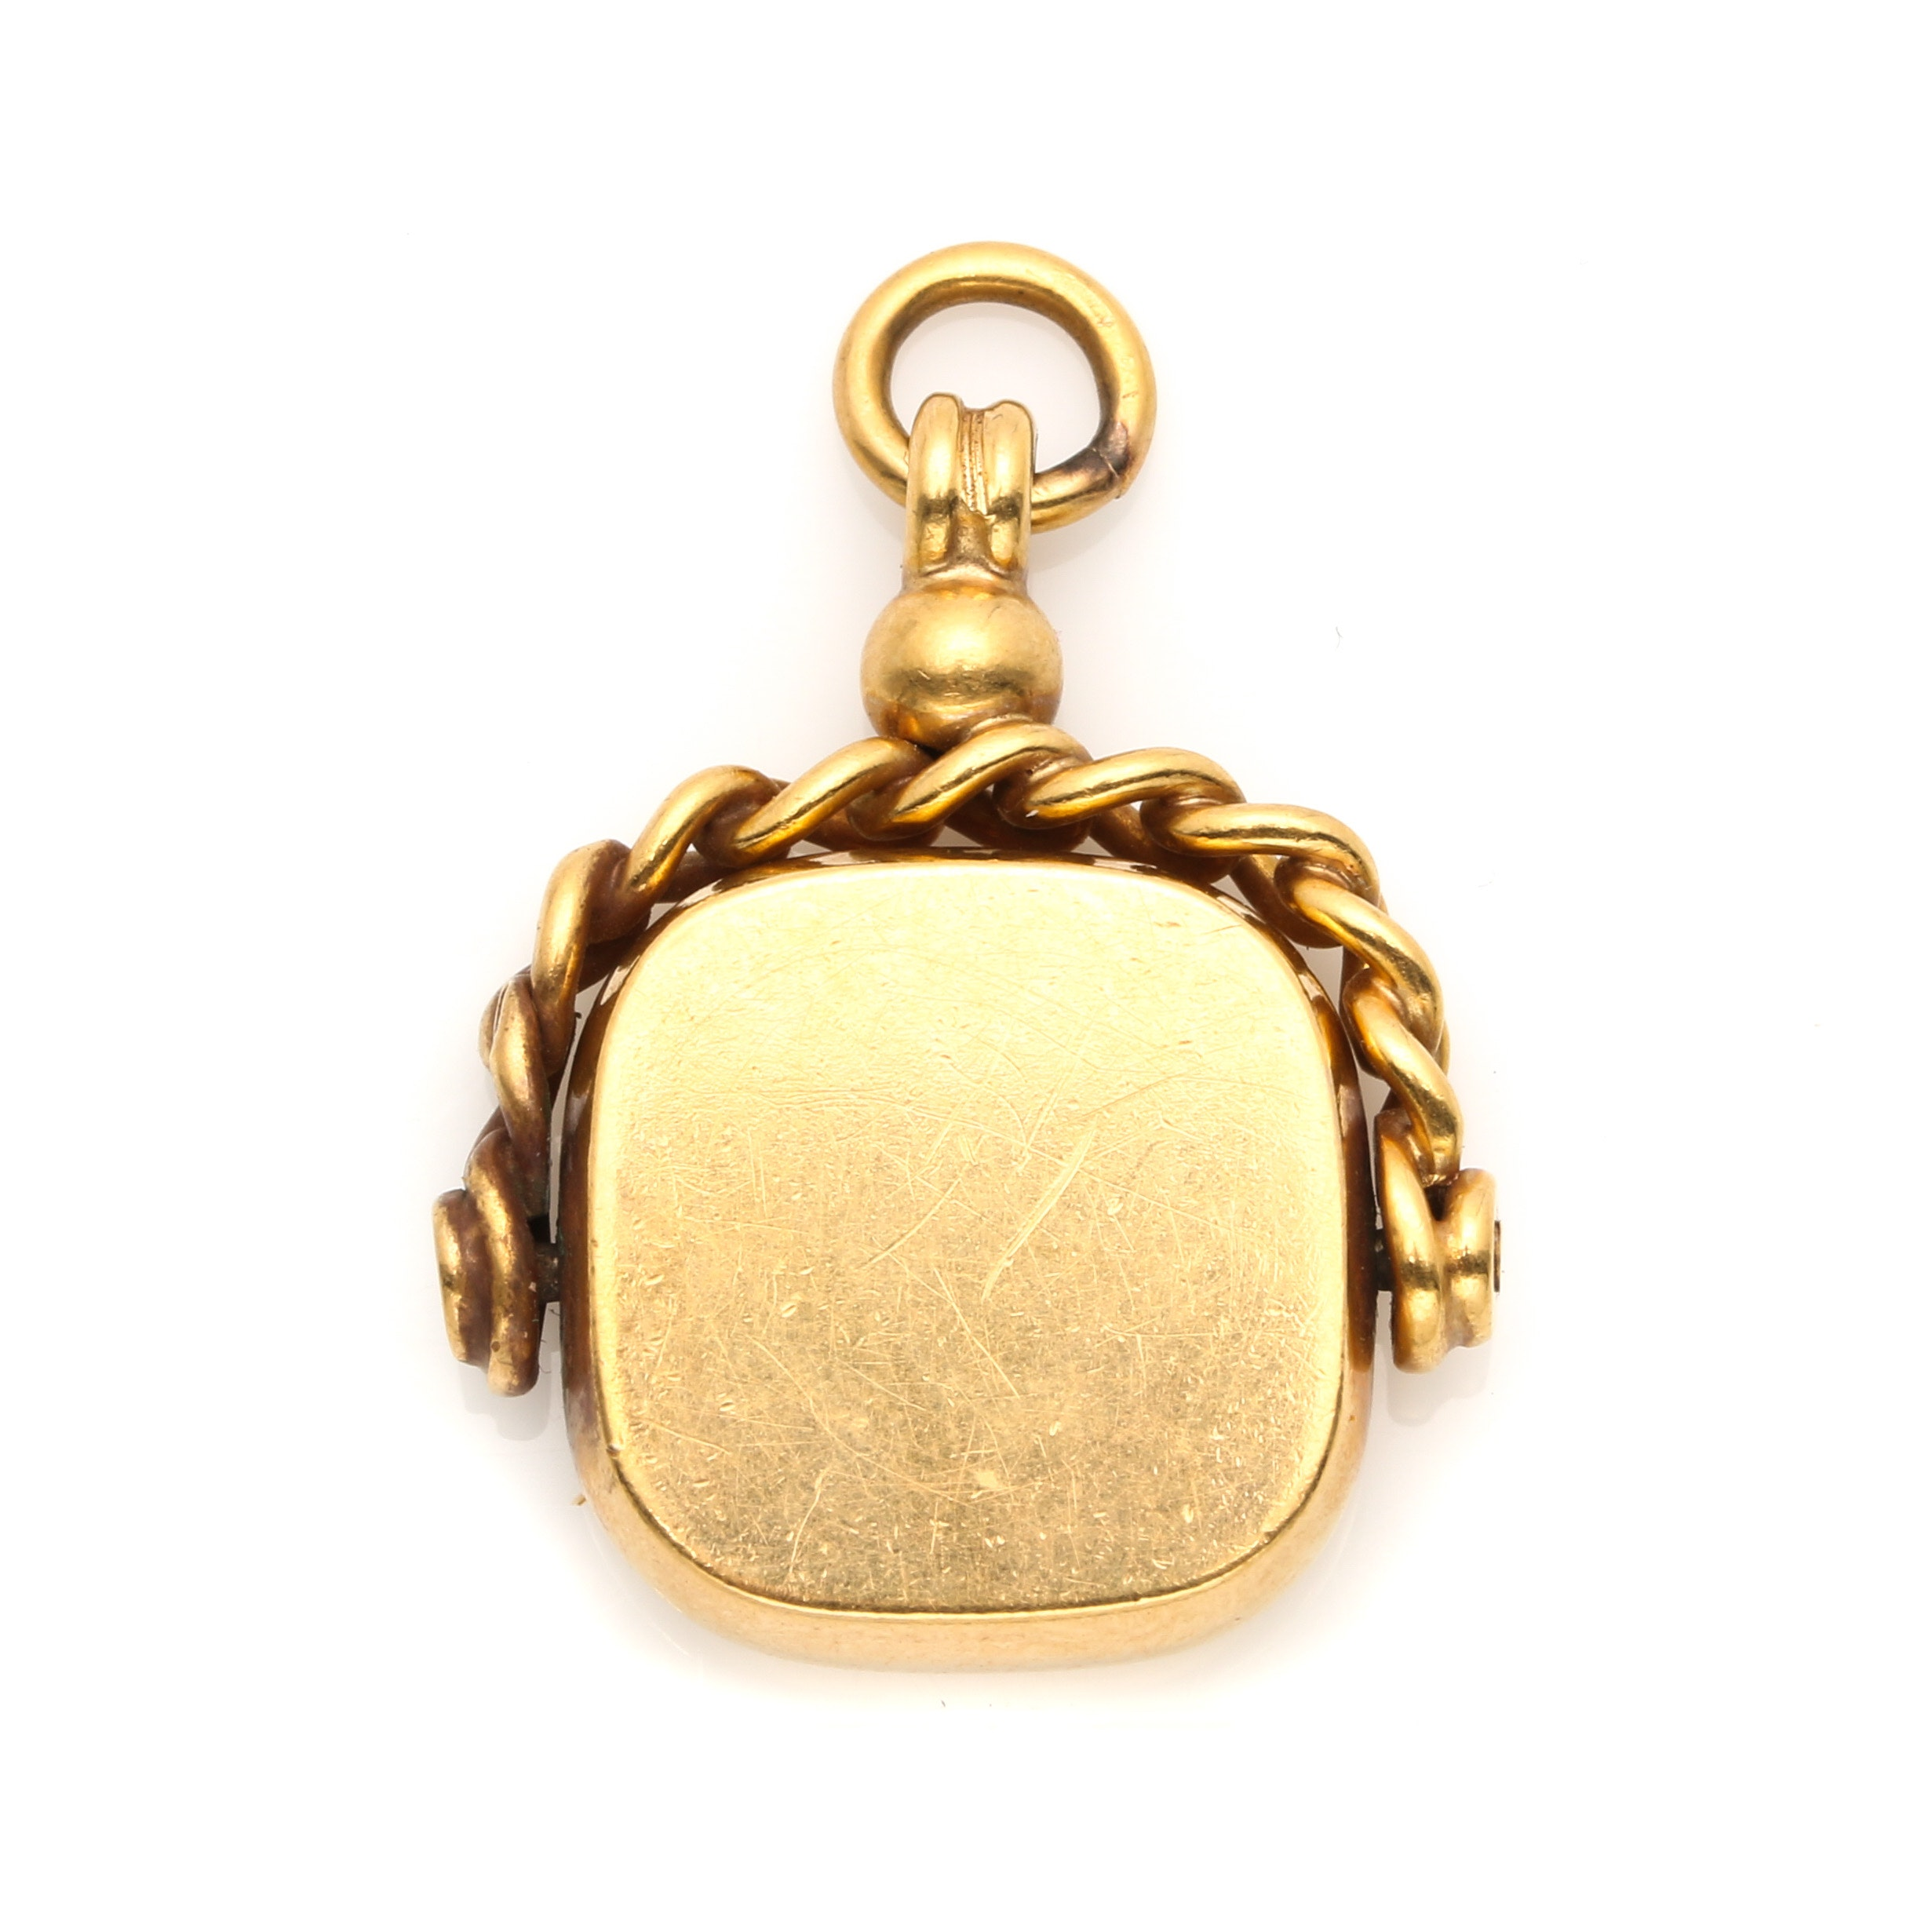 Vintage 9K Yellow Gold Watch Fob Pendant